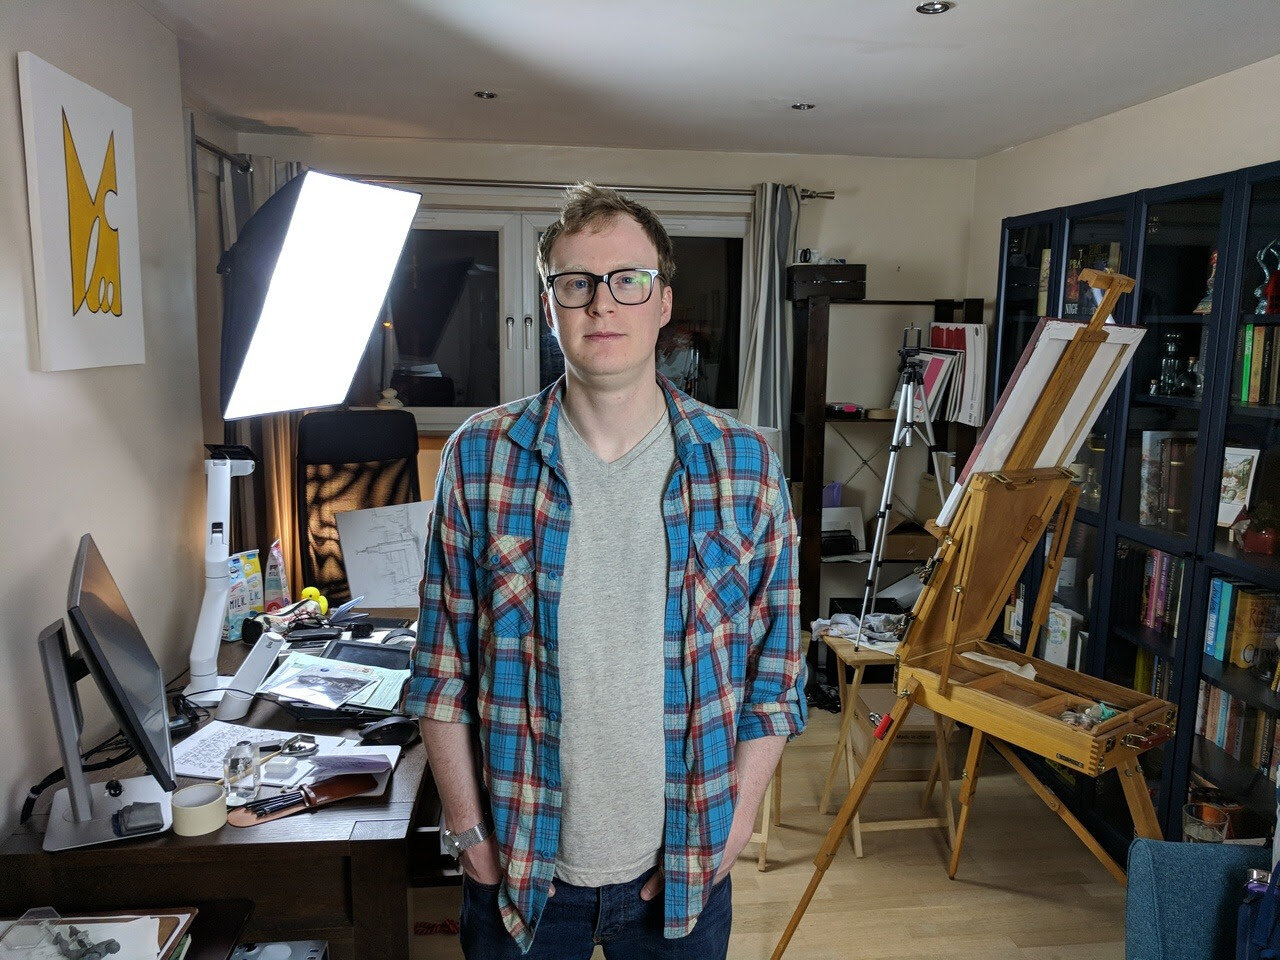 Lee McGuire standing in his studio looking at camera.